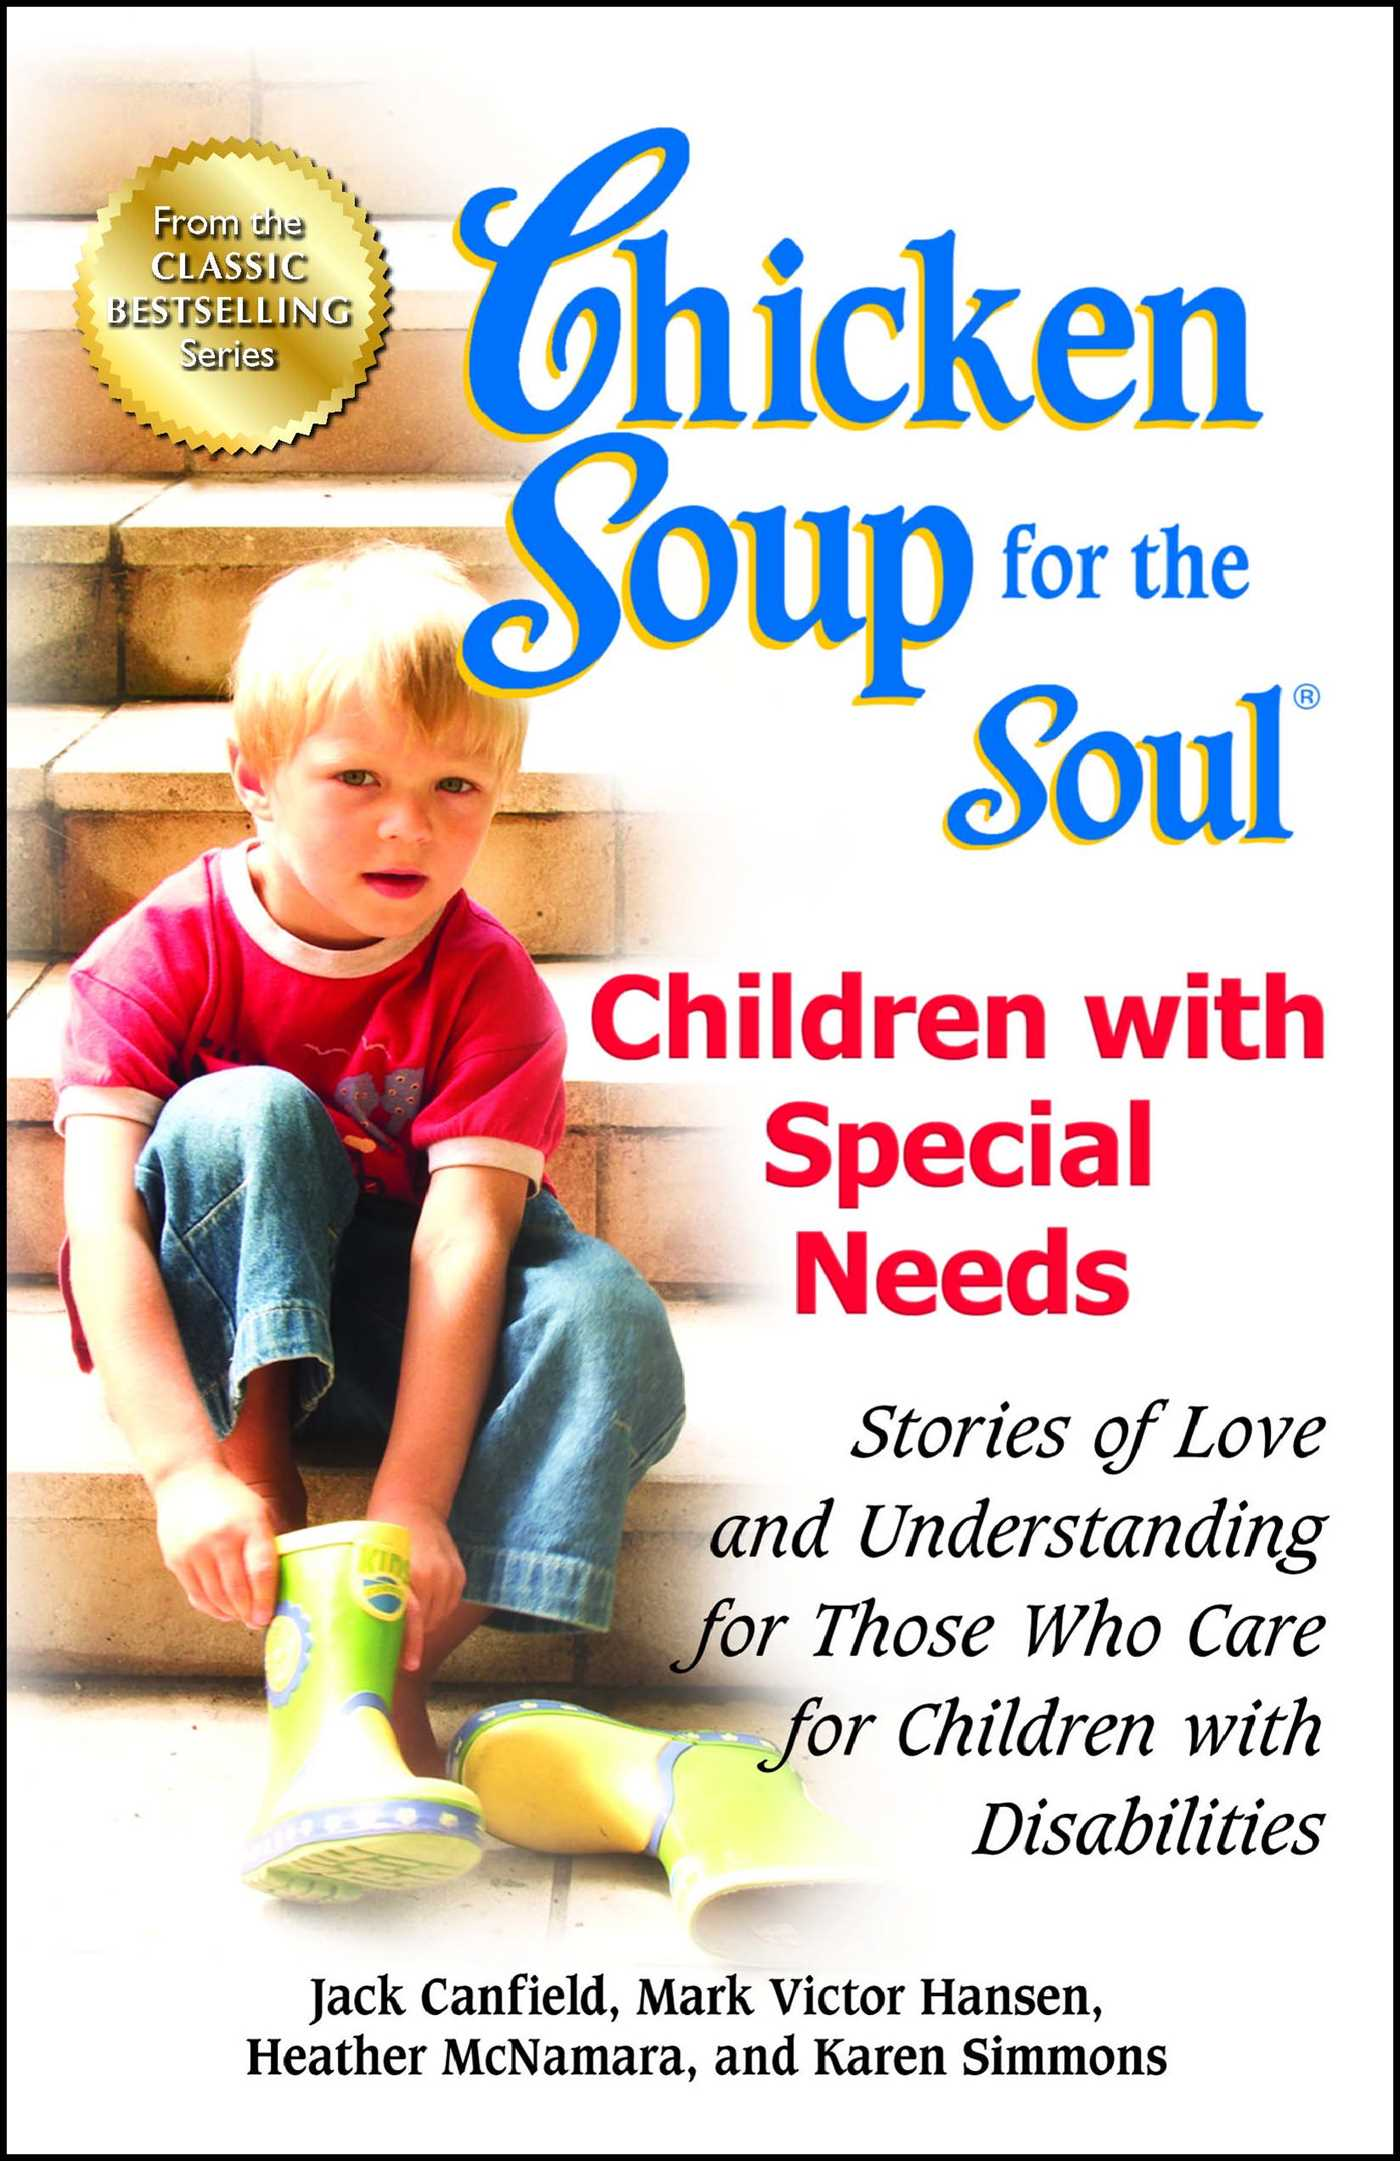 Chicken soup for the soul children with special needs 9781623610616 hr